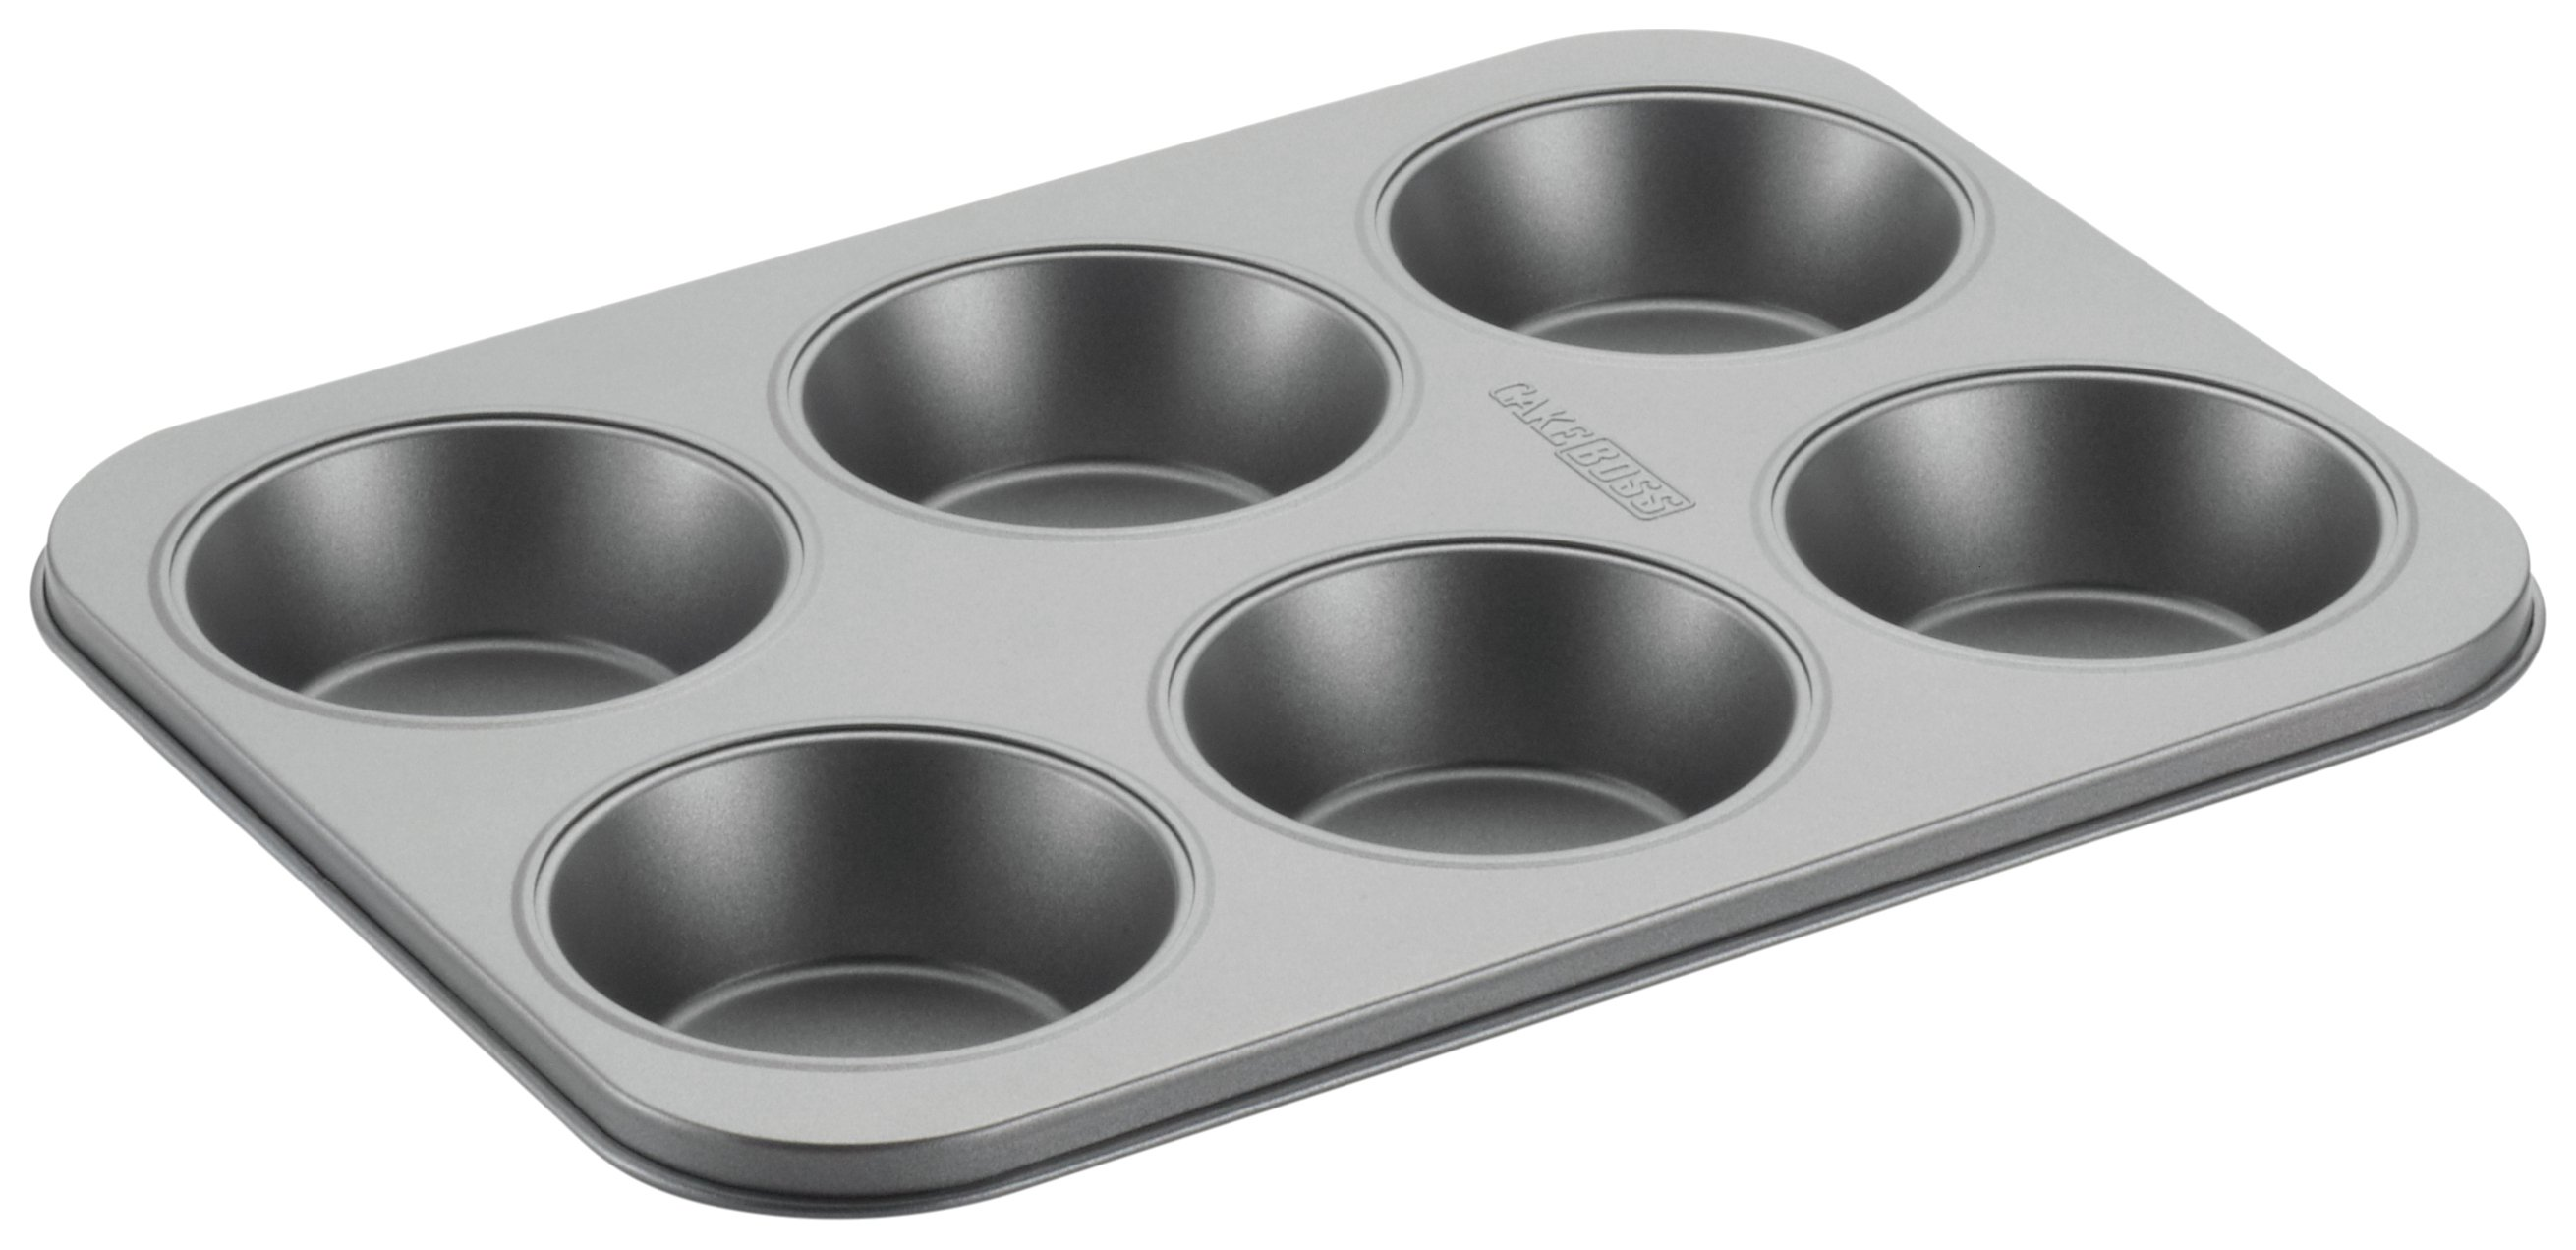 Image of Cake Boss Non-Stick 6 Cup Mini Pie Baking Tin.